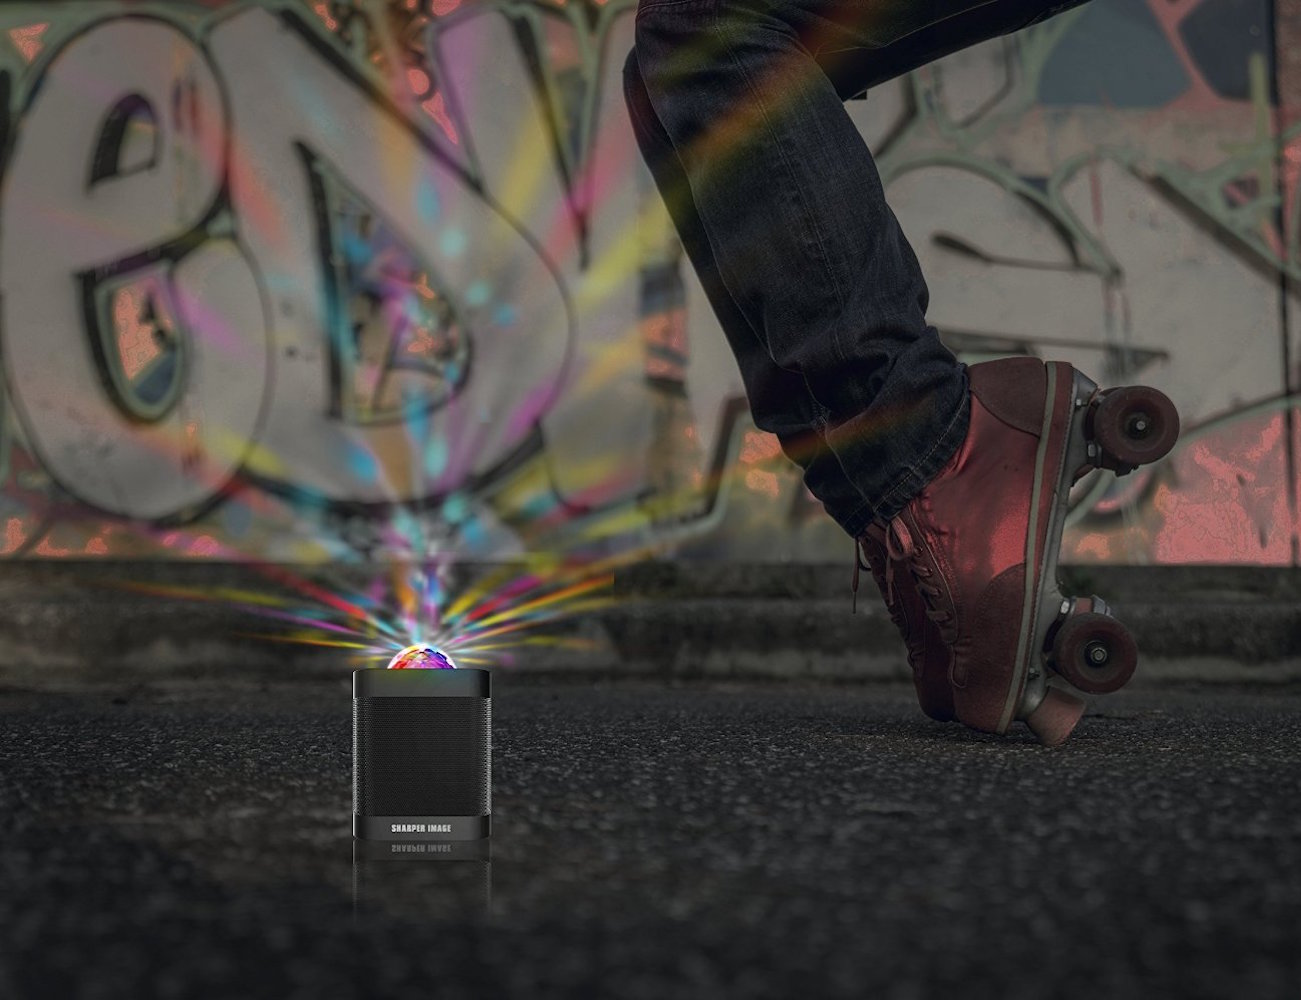 bluetooth-speaker-with-led-light-show-from-sharper-image-02